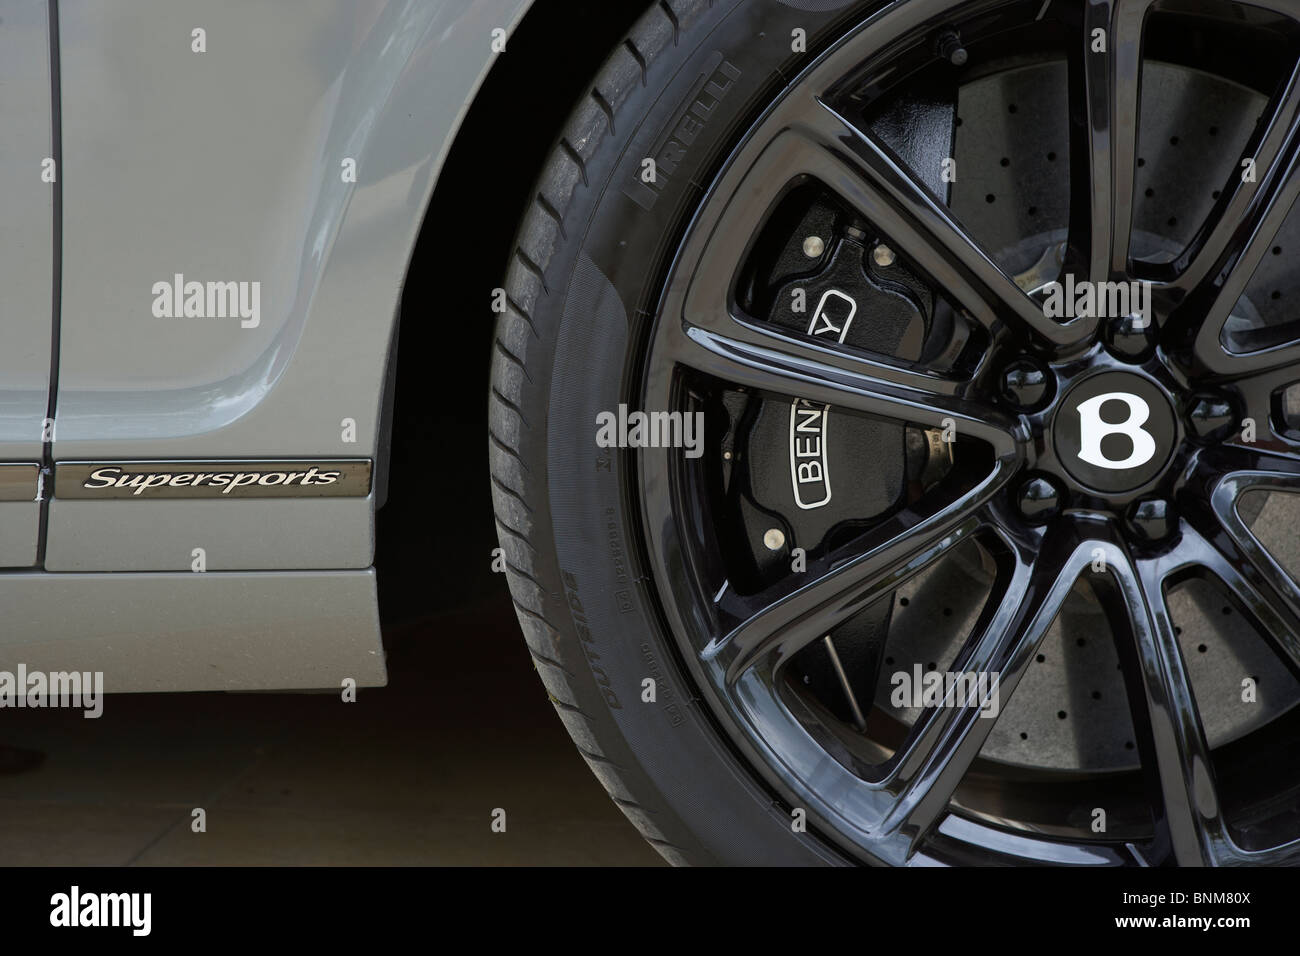 BENTLEY TURBO SPORTS CAR ALLOY WHEEL BADGE LOGO - Stock Image